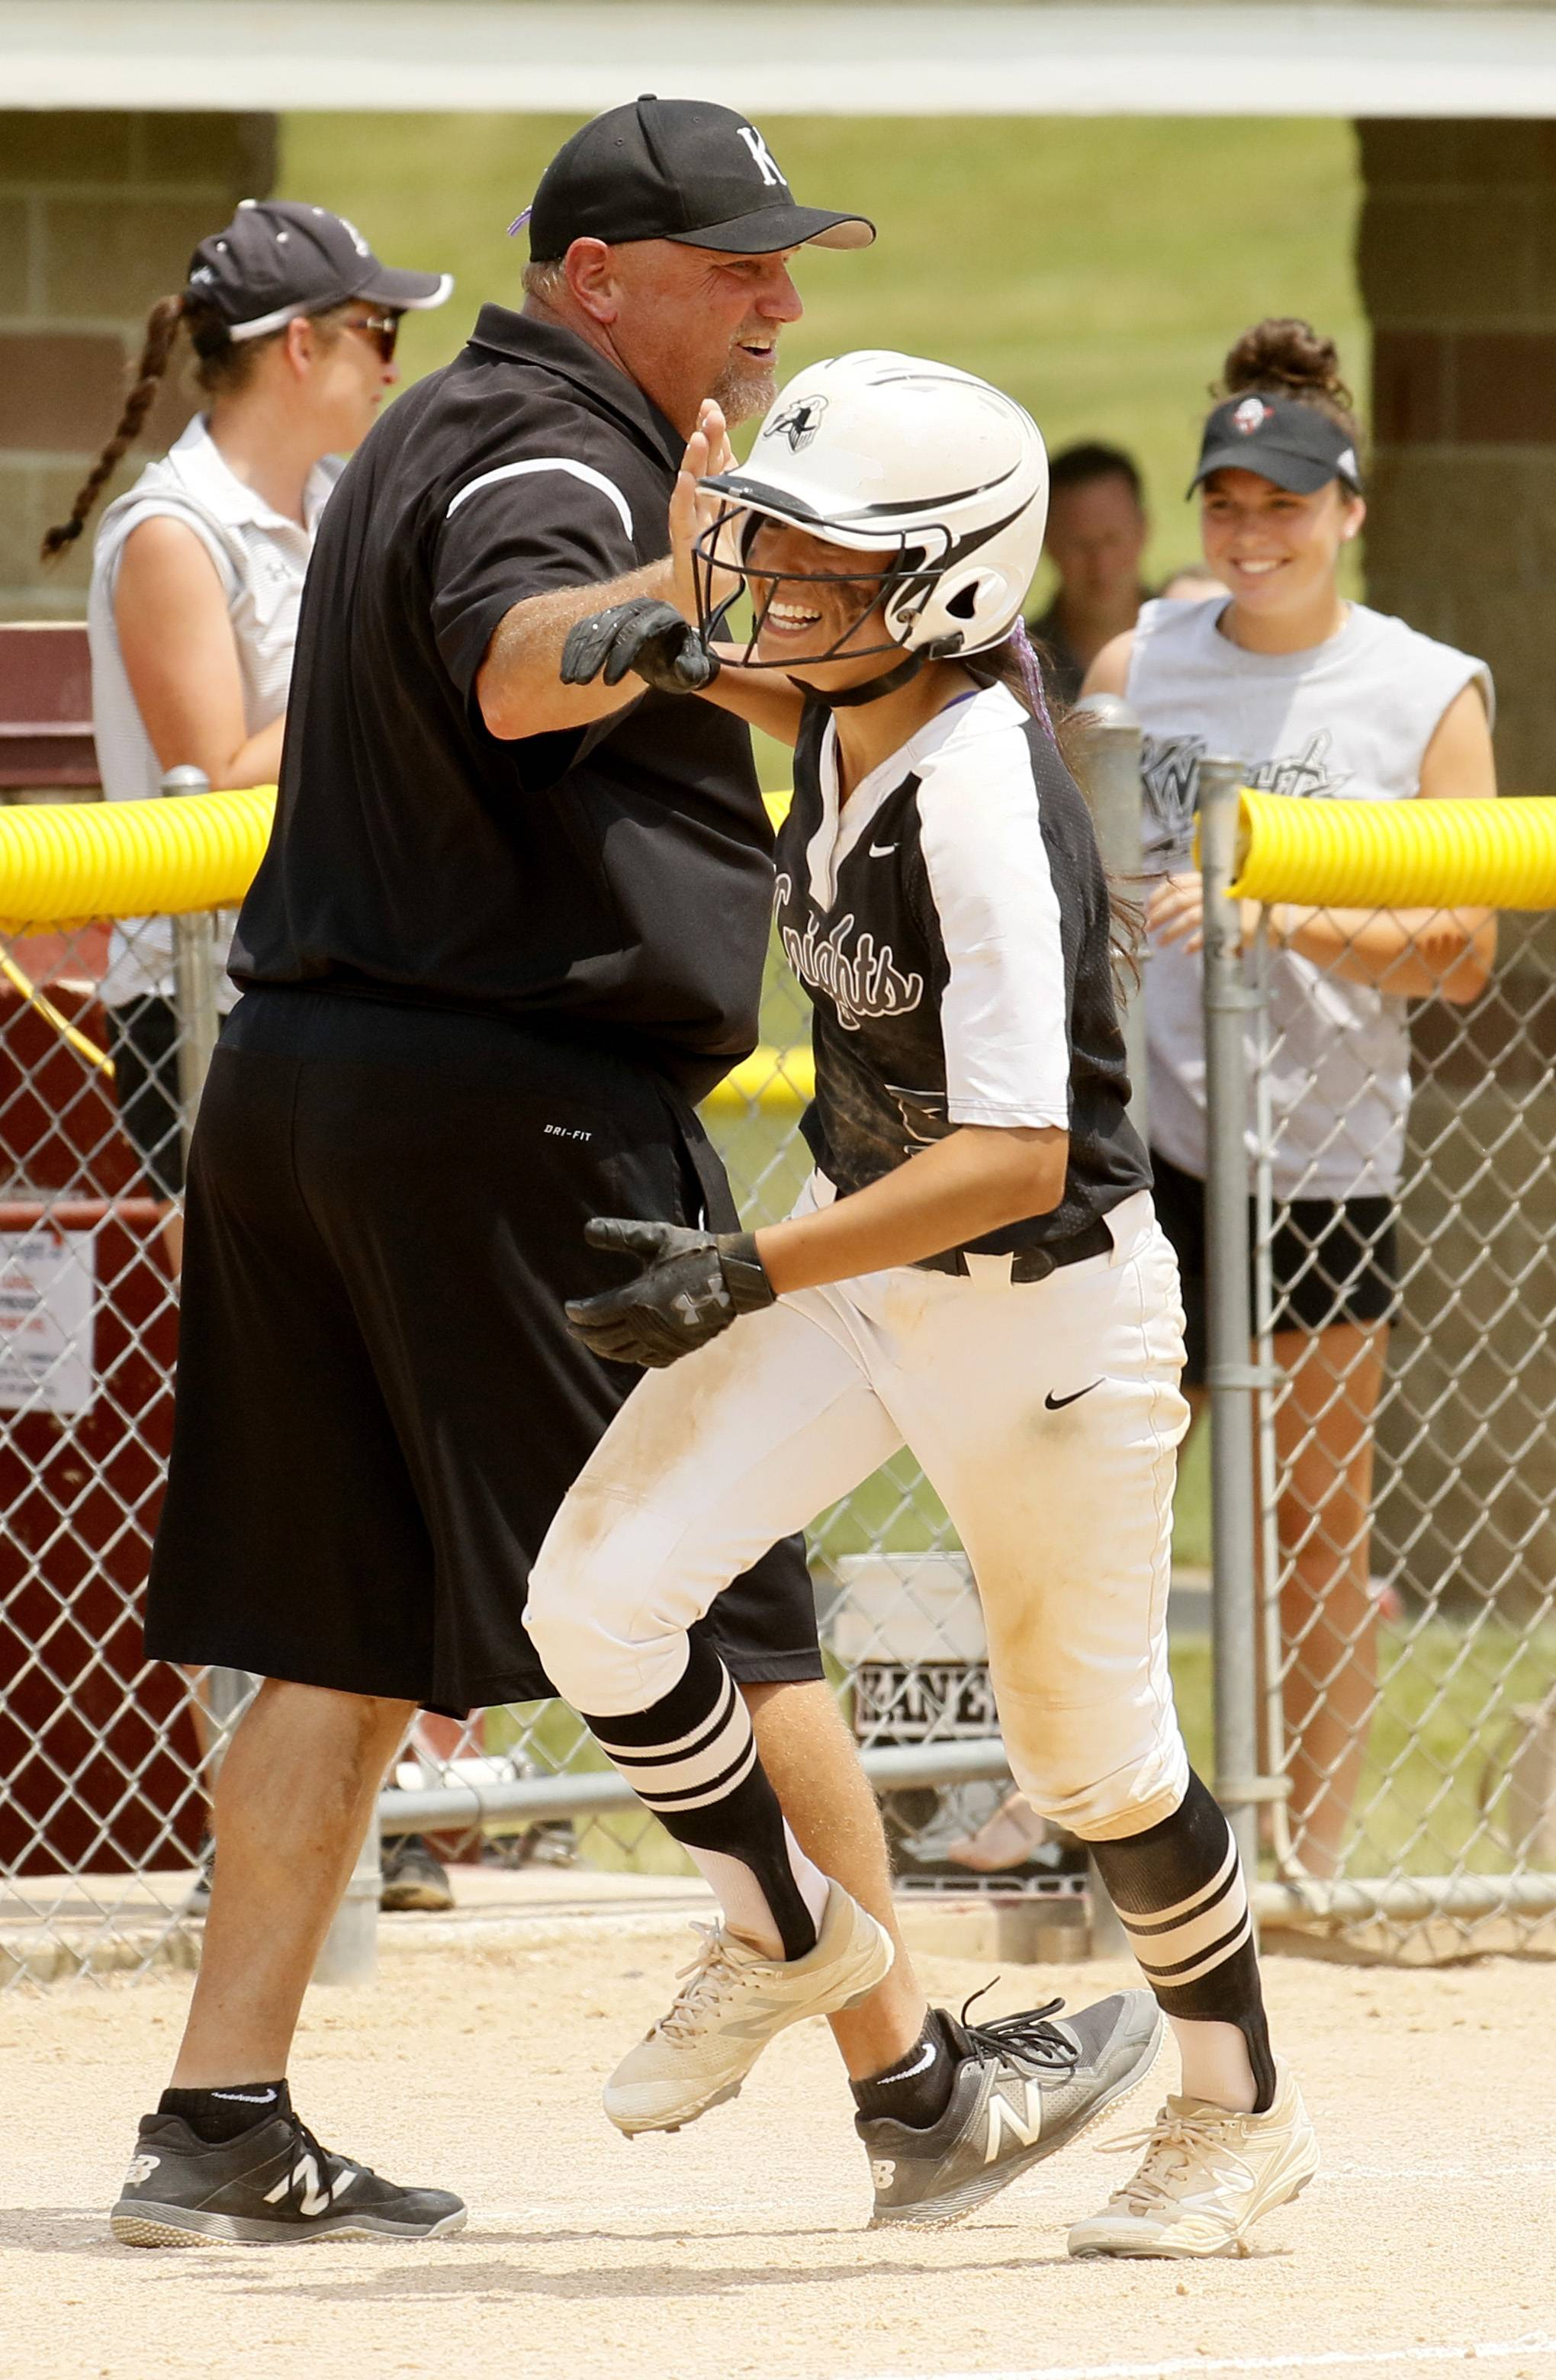 Kaneland's Donatela Sommesi rounds third base and is congratulated for hitting a home run against Montini Catholic.